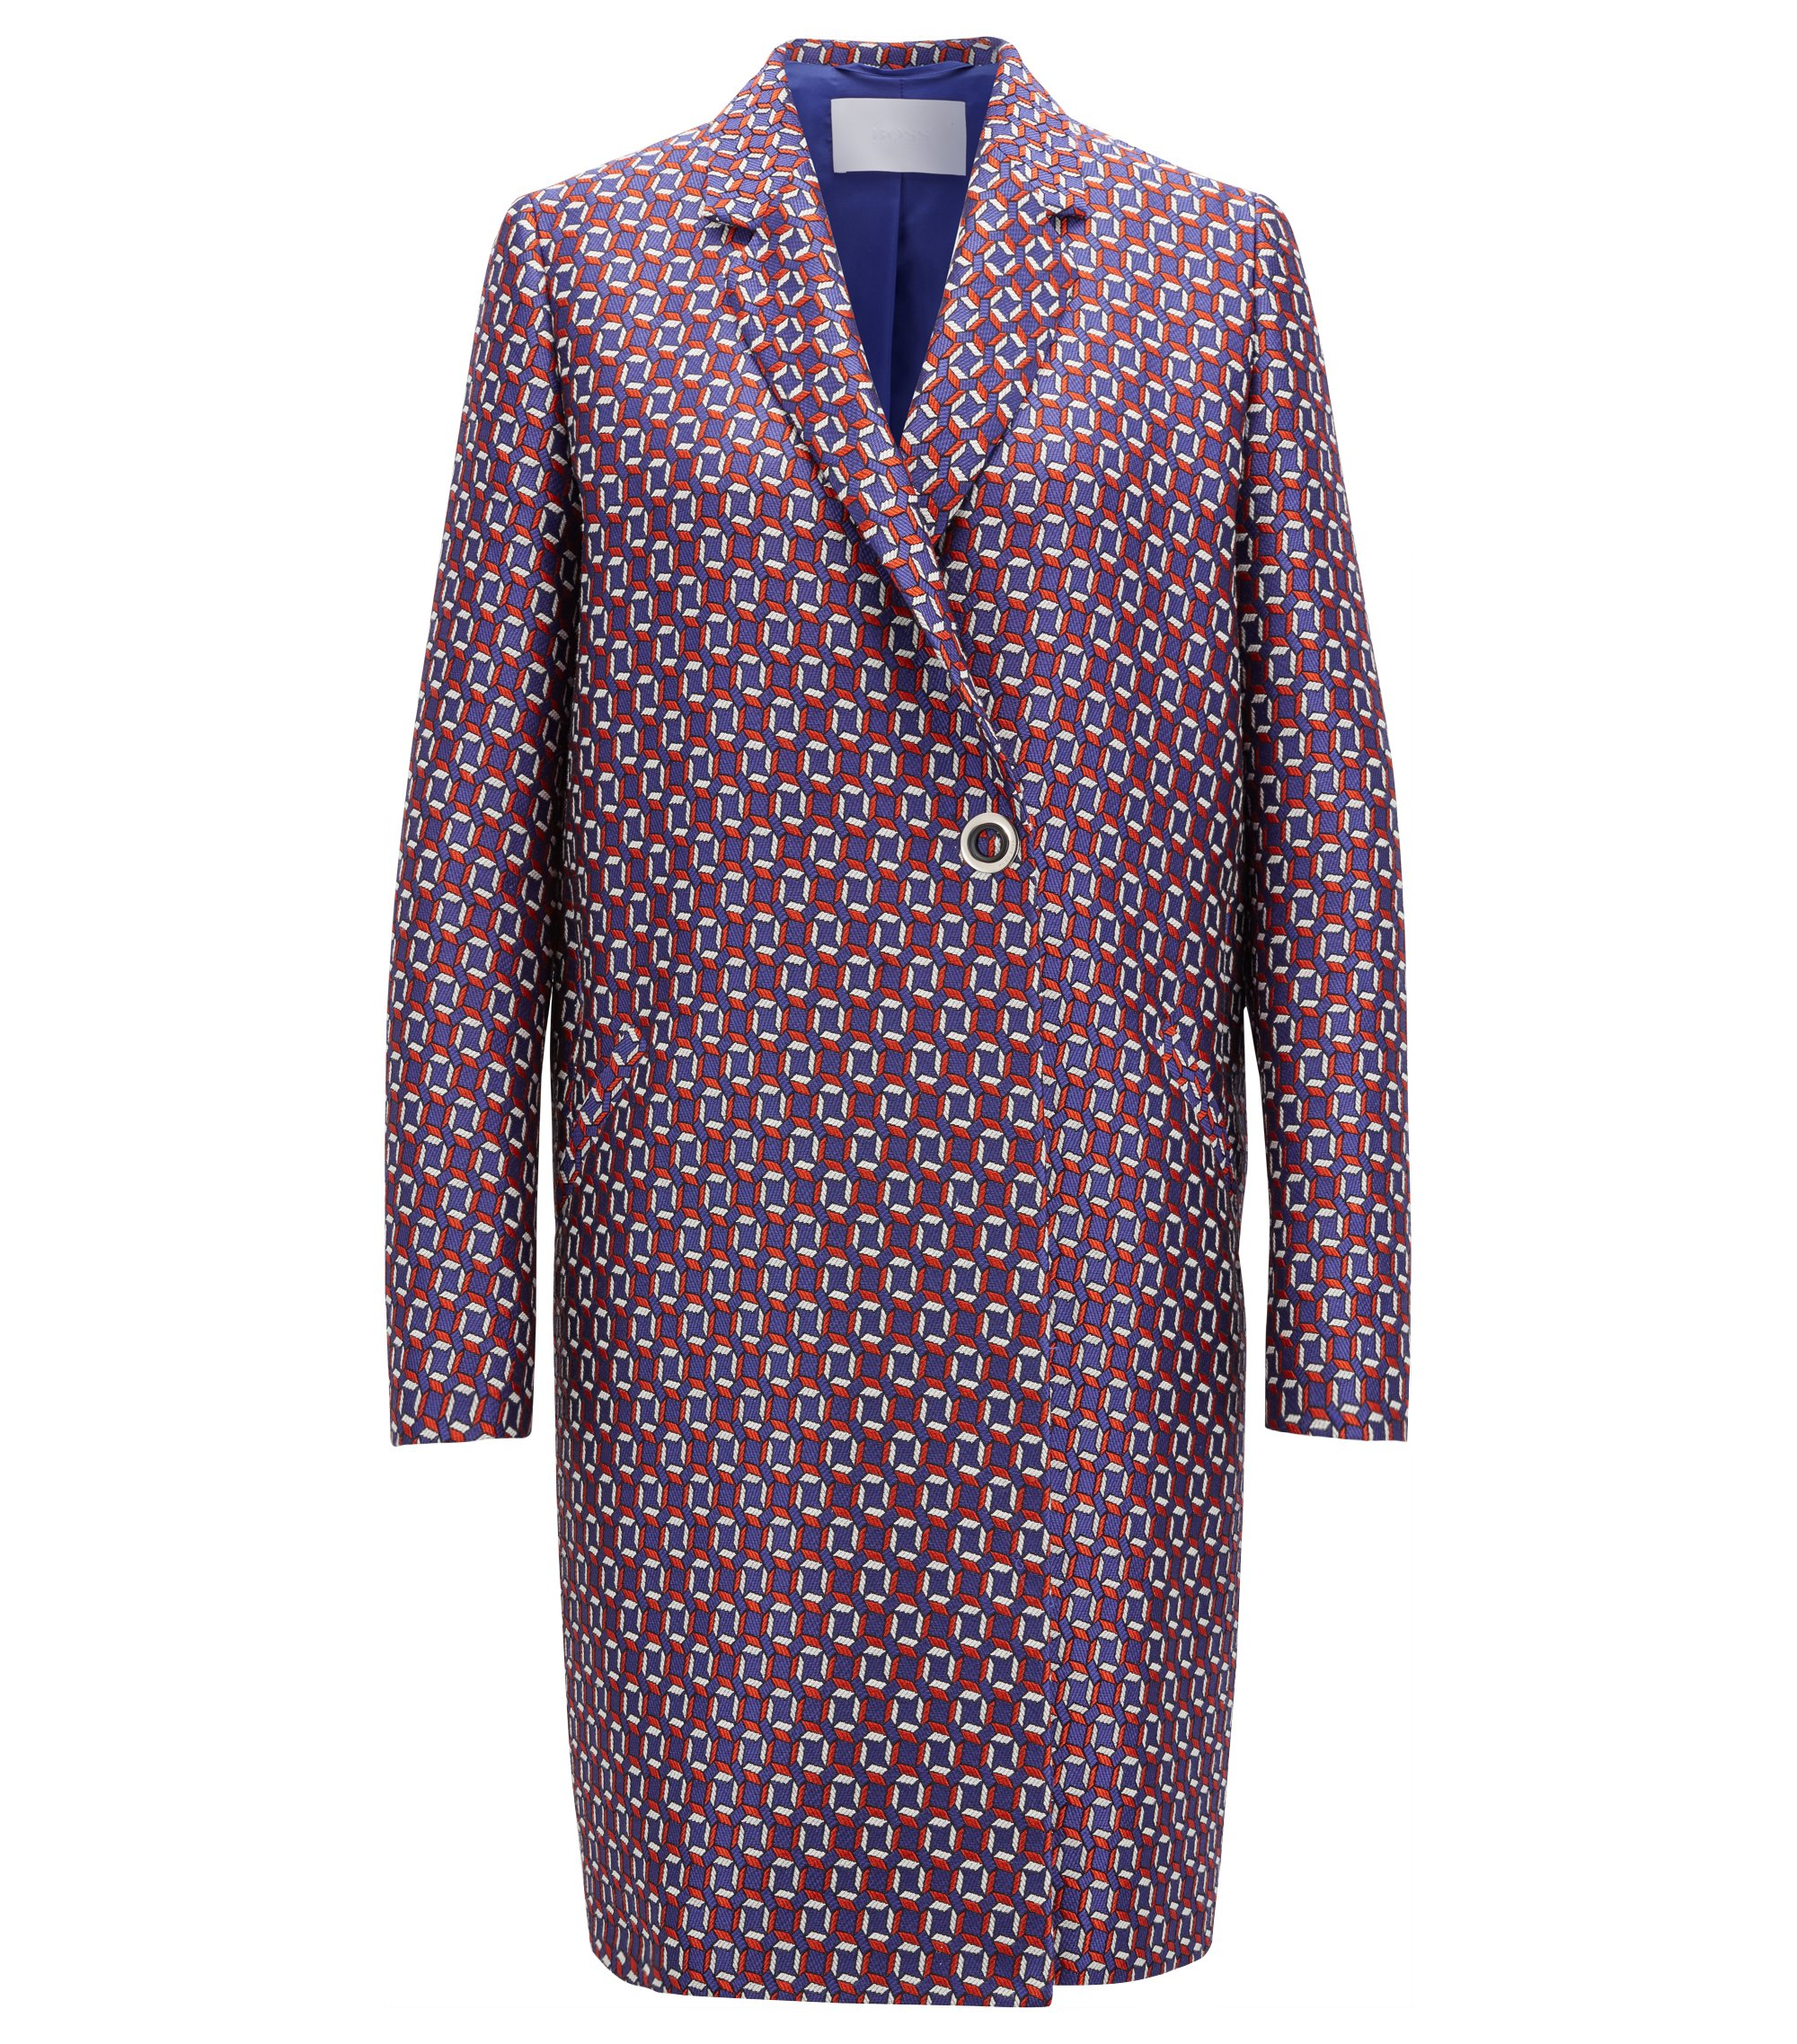 Relaxed-fit coat with all-over scarf-inspired print, Patterned